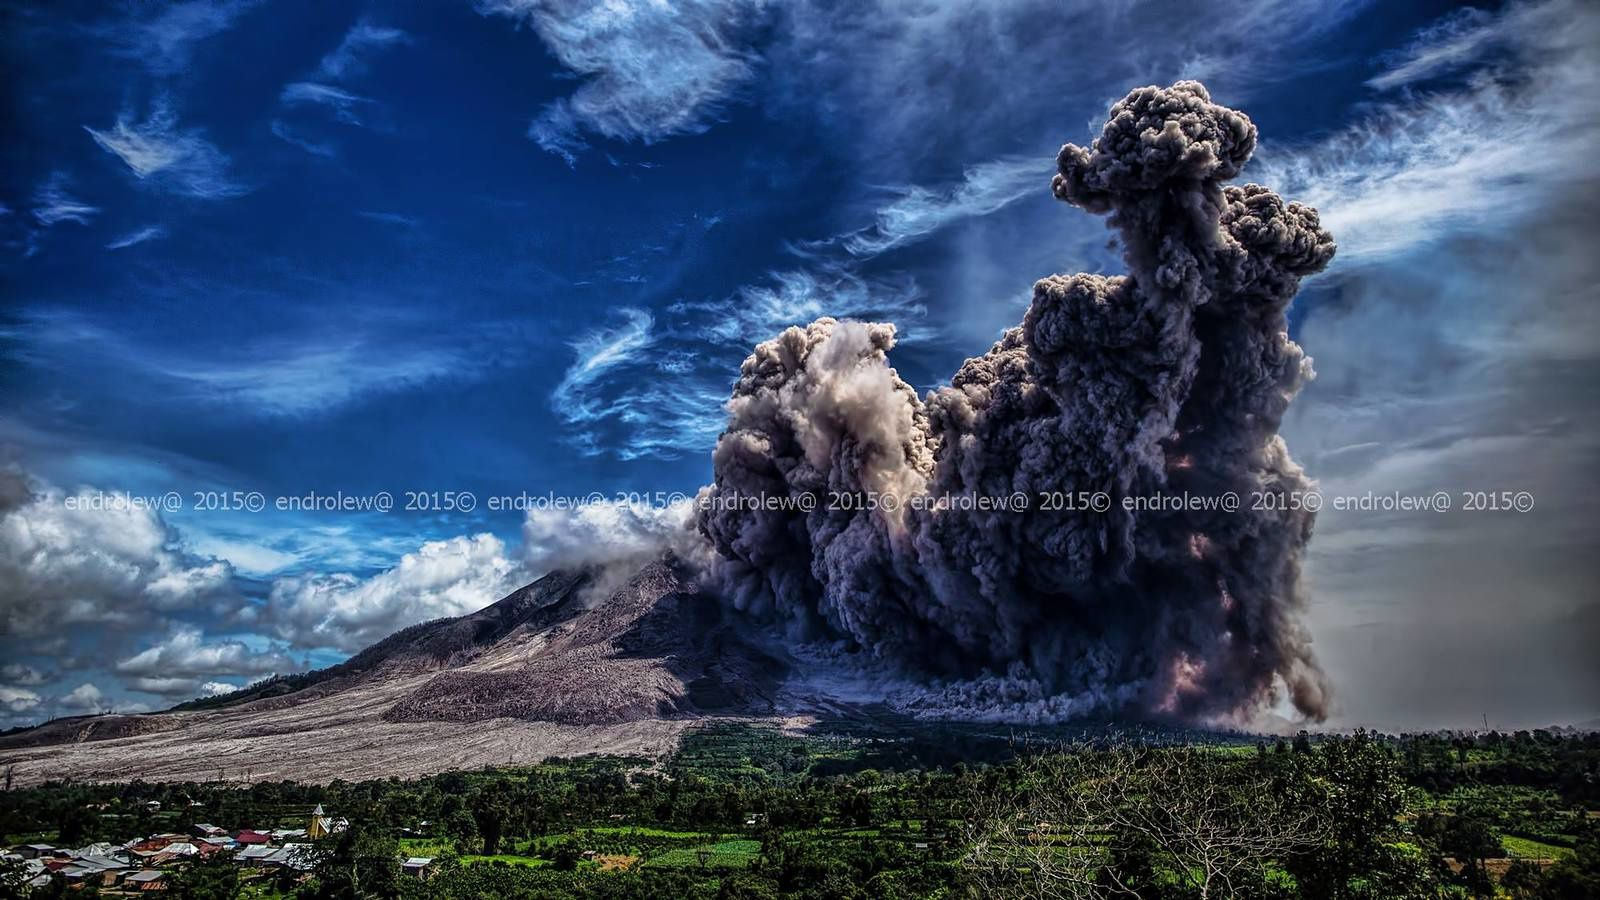 Sinabung - development of the pyroclastic flow 06/19/2015 - 11:40 in the top, bottom at 11:42